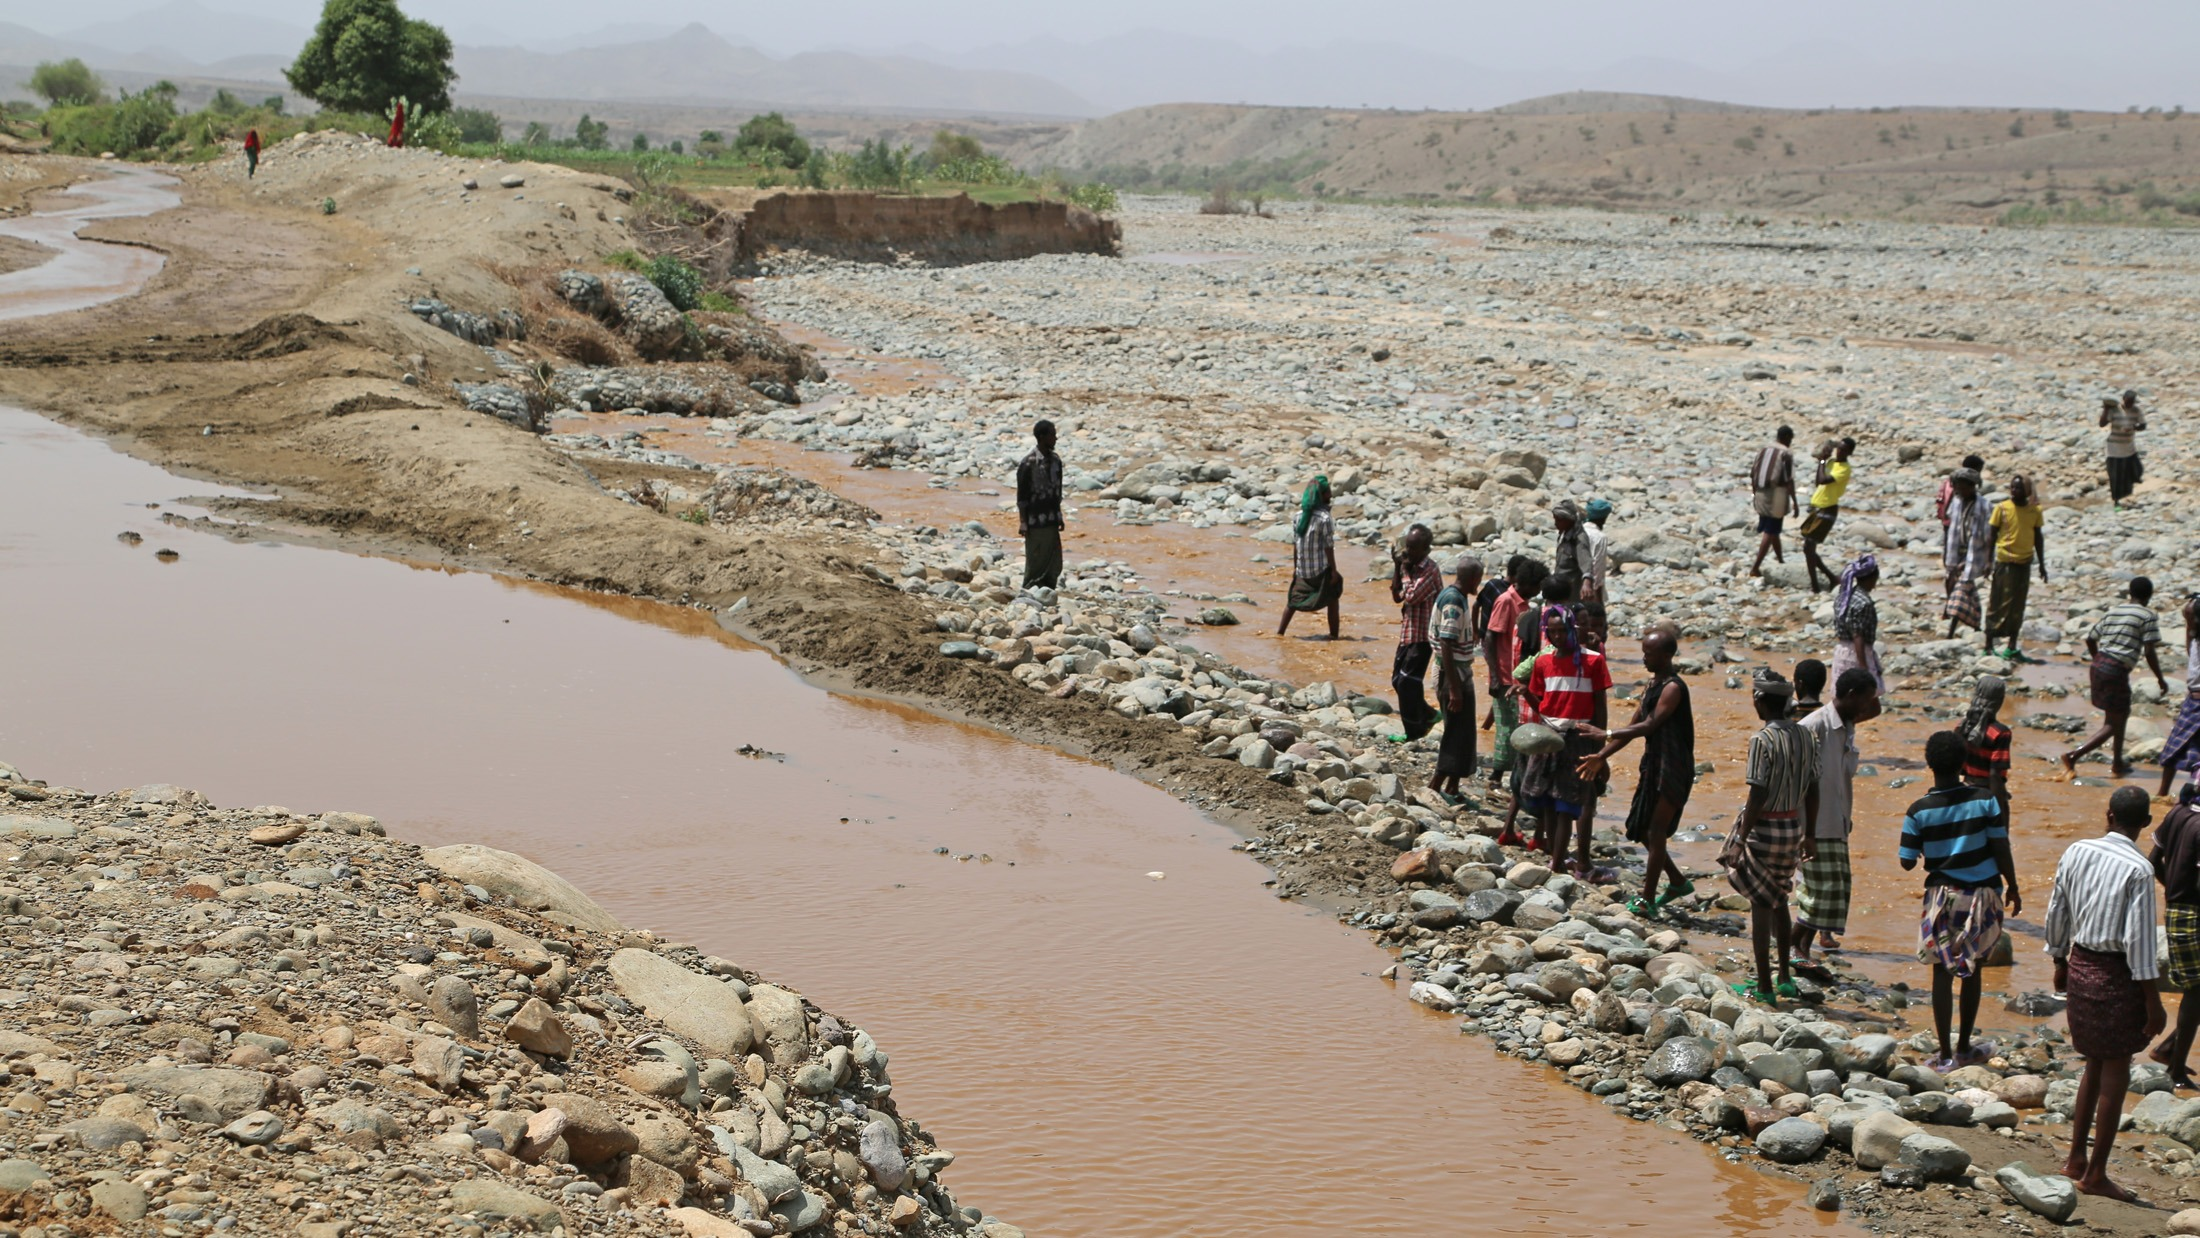 The men of Sebana-Demale in Ethiopia's Afar region try an divert the water of the river Demale towards their crops as part of their efforts under the Productive Safety Net Programme to build a community asset